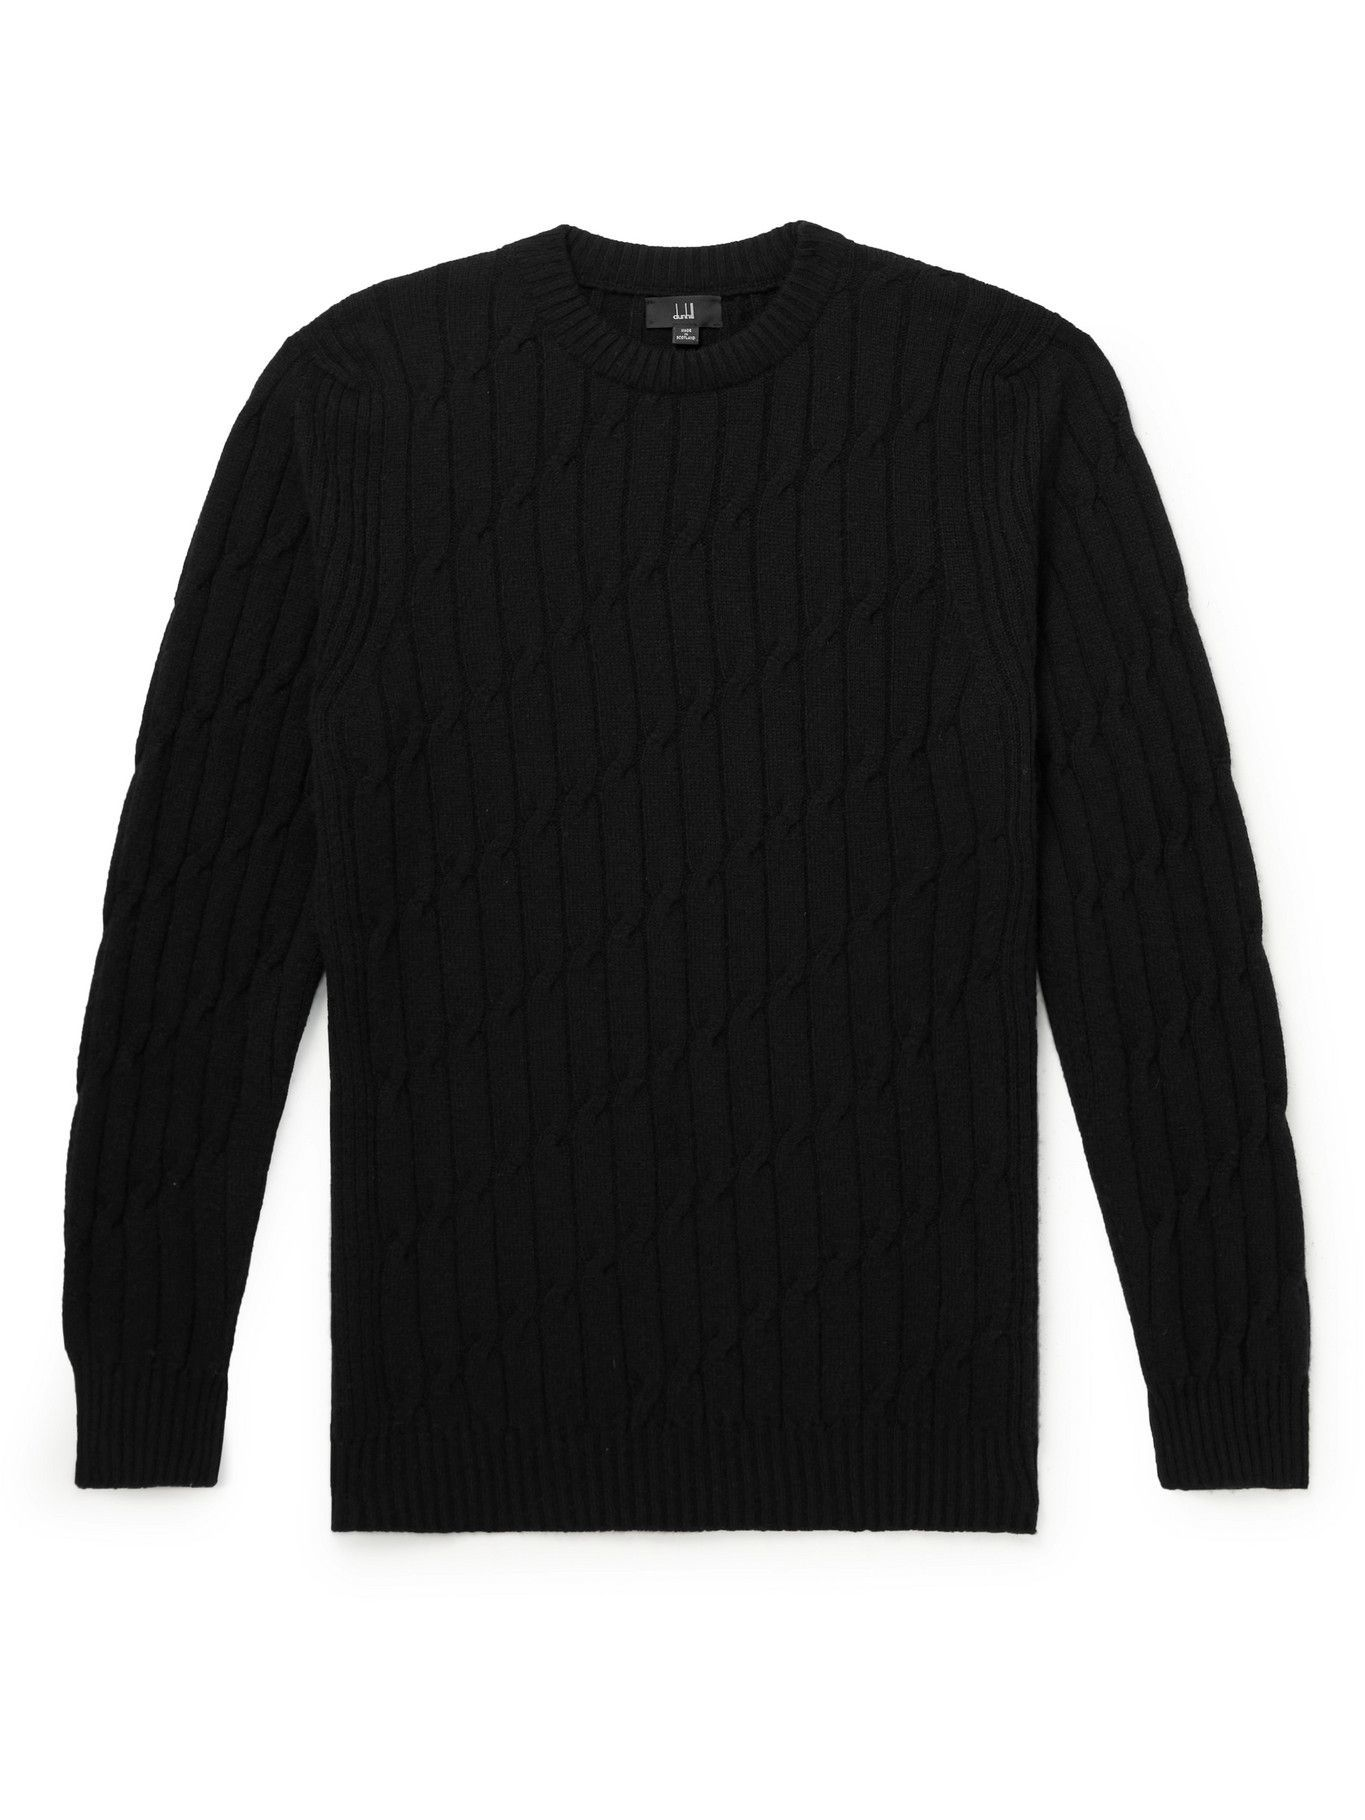 Dunhill - Cable-Knit Cashmere Sweater - Black